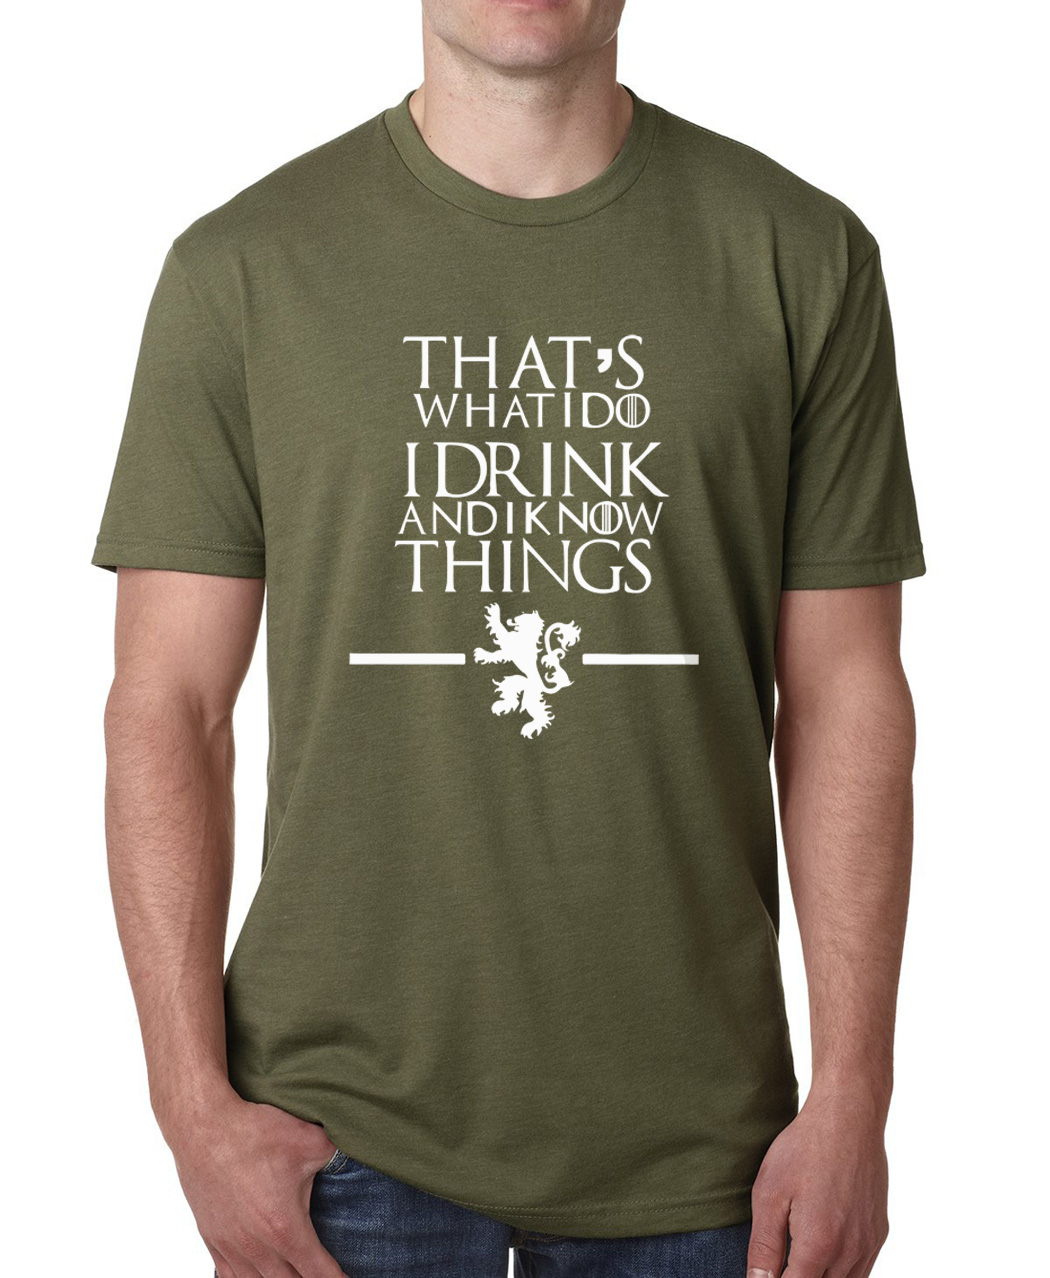 That's What I Do I Drink and I know Things t shirt men fashion streetwear cotton tops Game of Thrones top fitness clothing